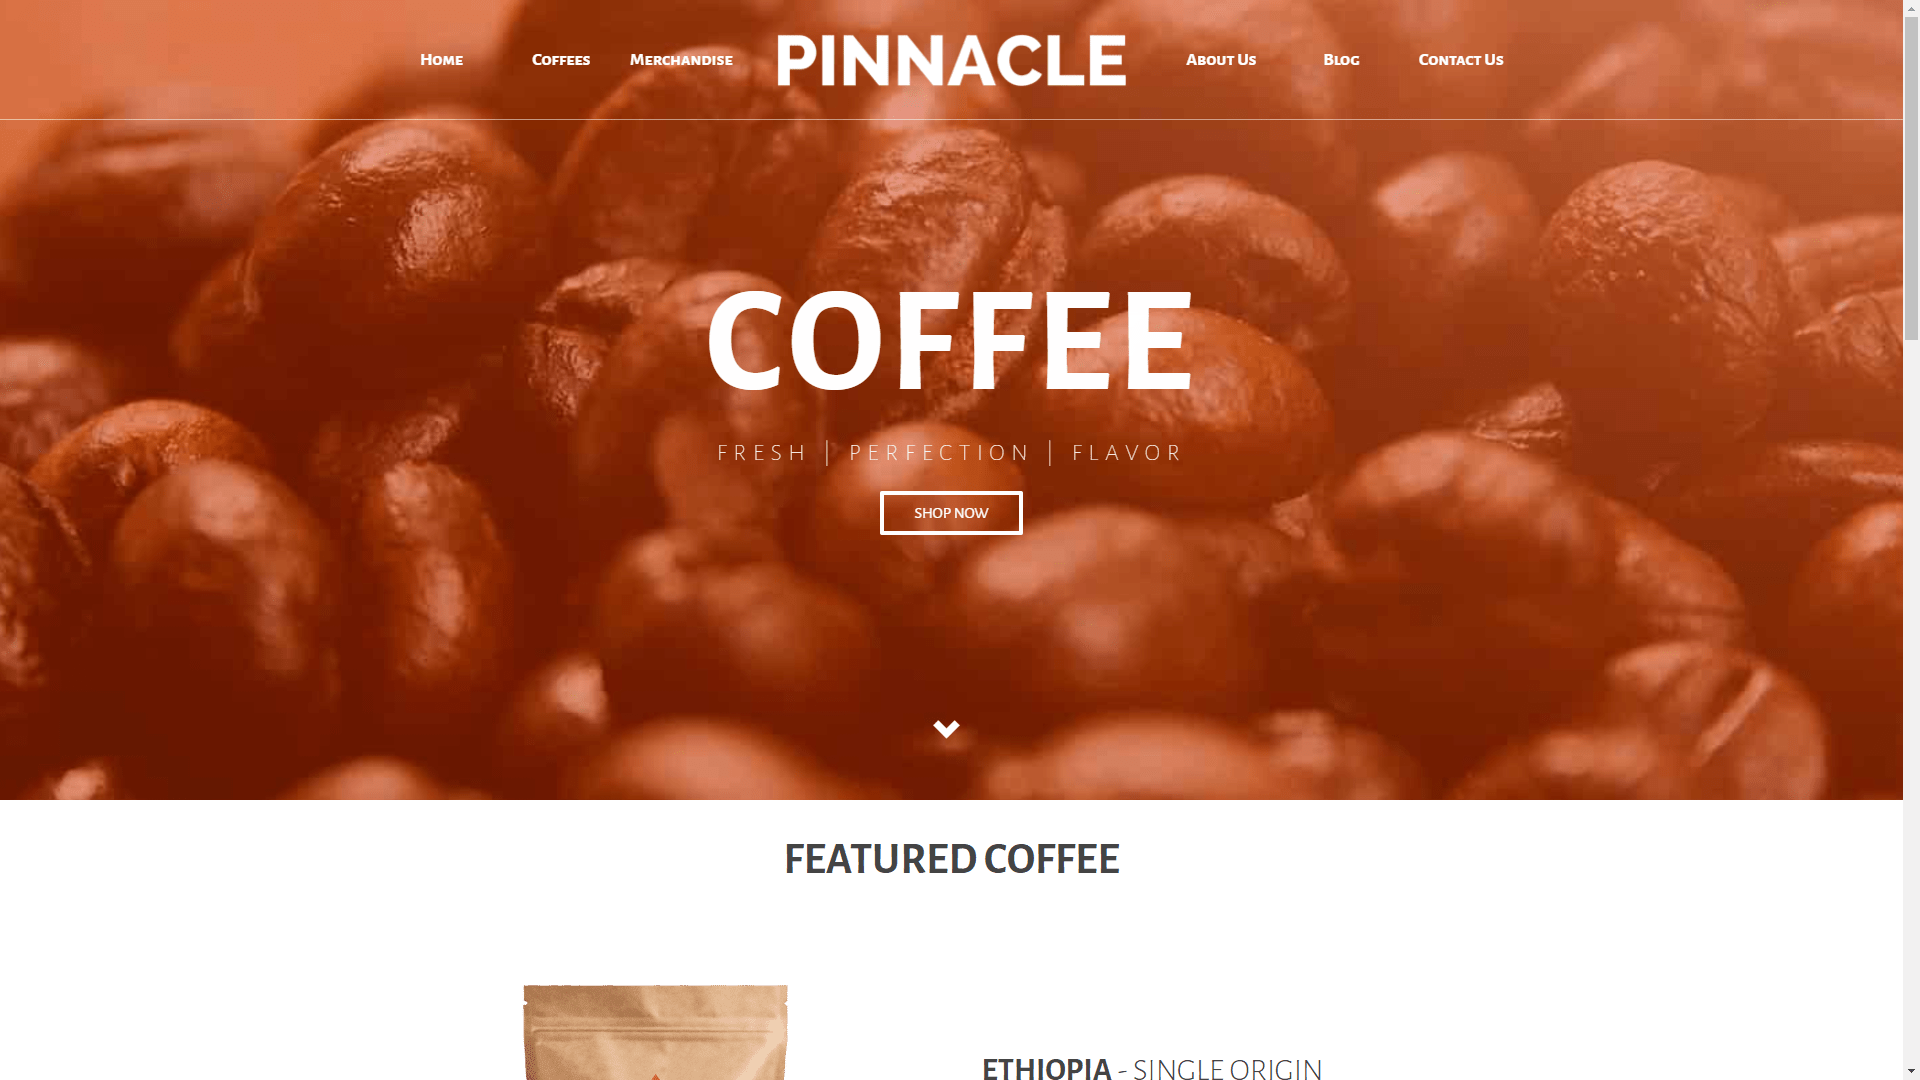 Web Design - Pinnacle Store - Walnut Creek CA